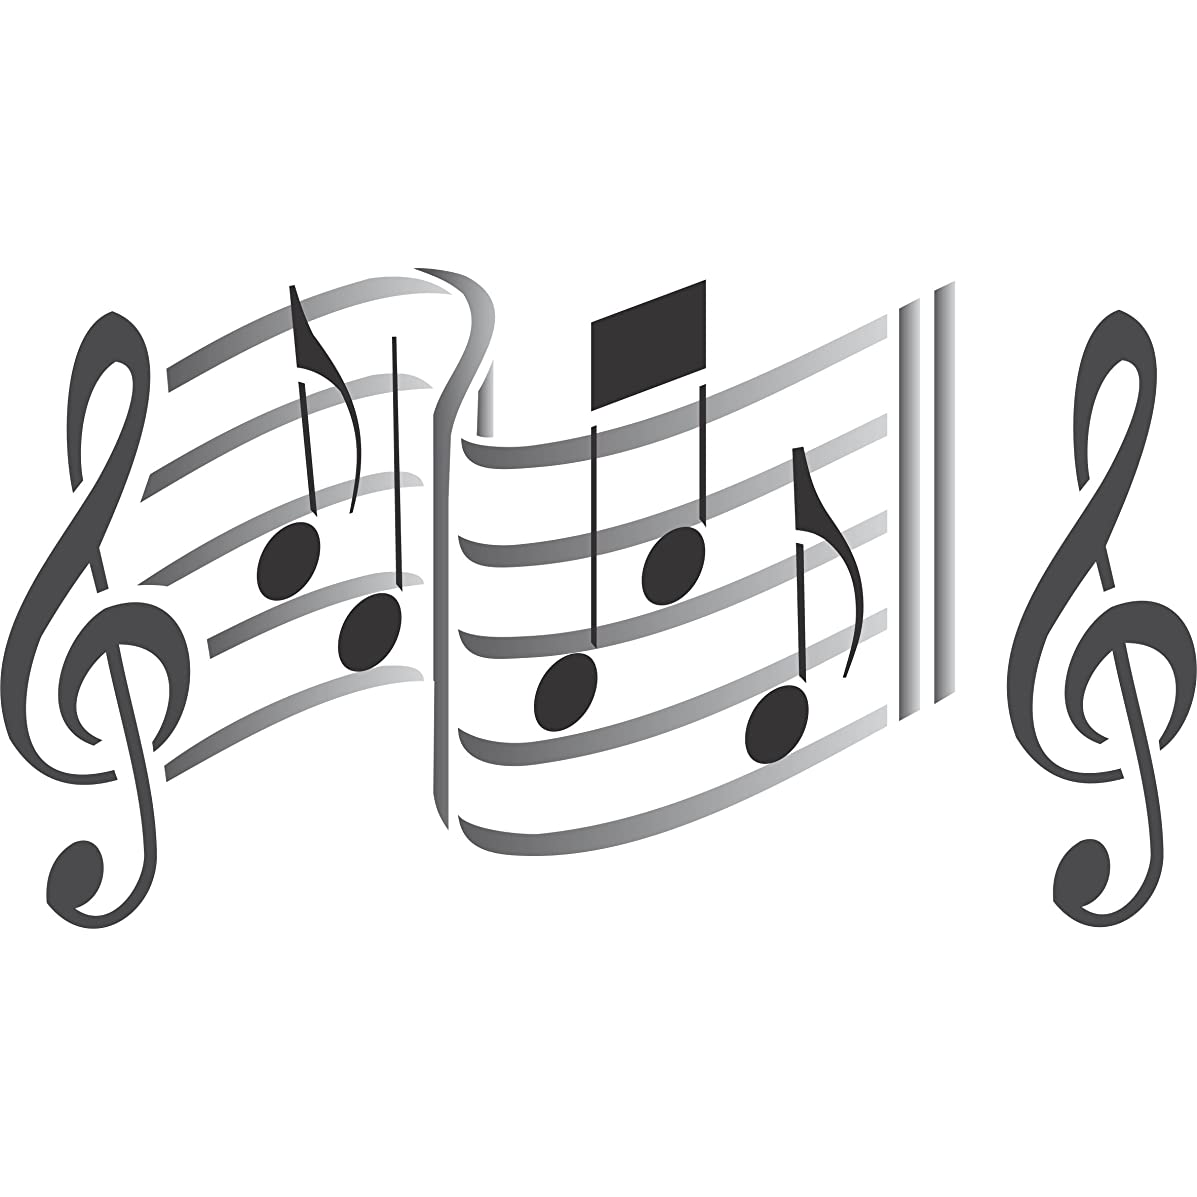 Music Stencil - 10 x 6.5 inch (S) - Reusable Musical Sheet Notes Notation Treble Clef Stencils for Painting - Use on Paper Projects Scrapbook Journal Walls Floors Fabric Furniture Glass Wood etc.